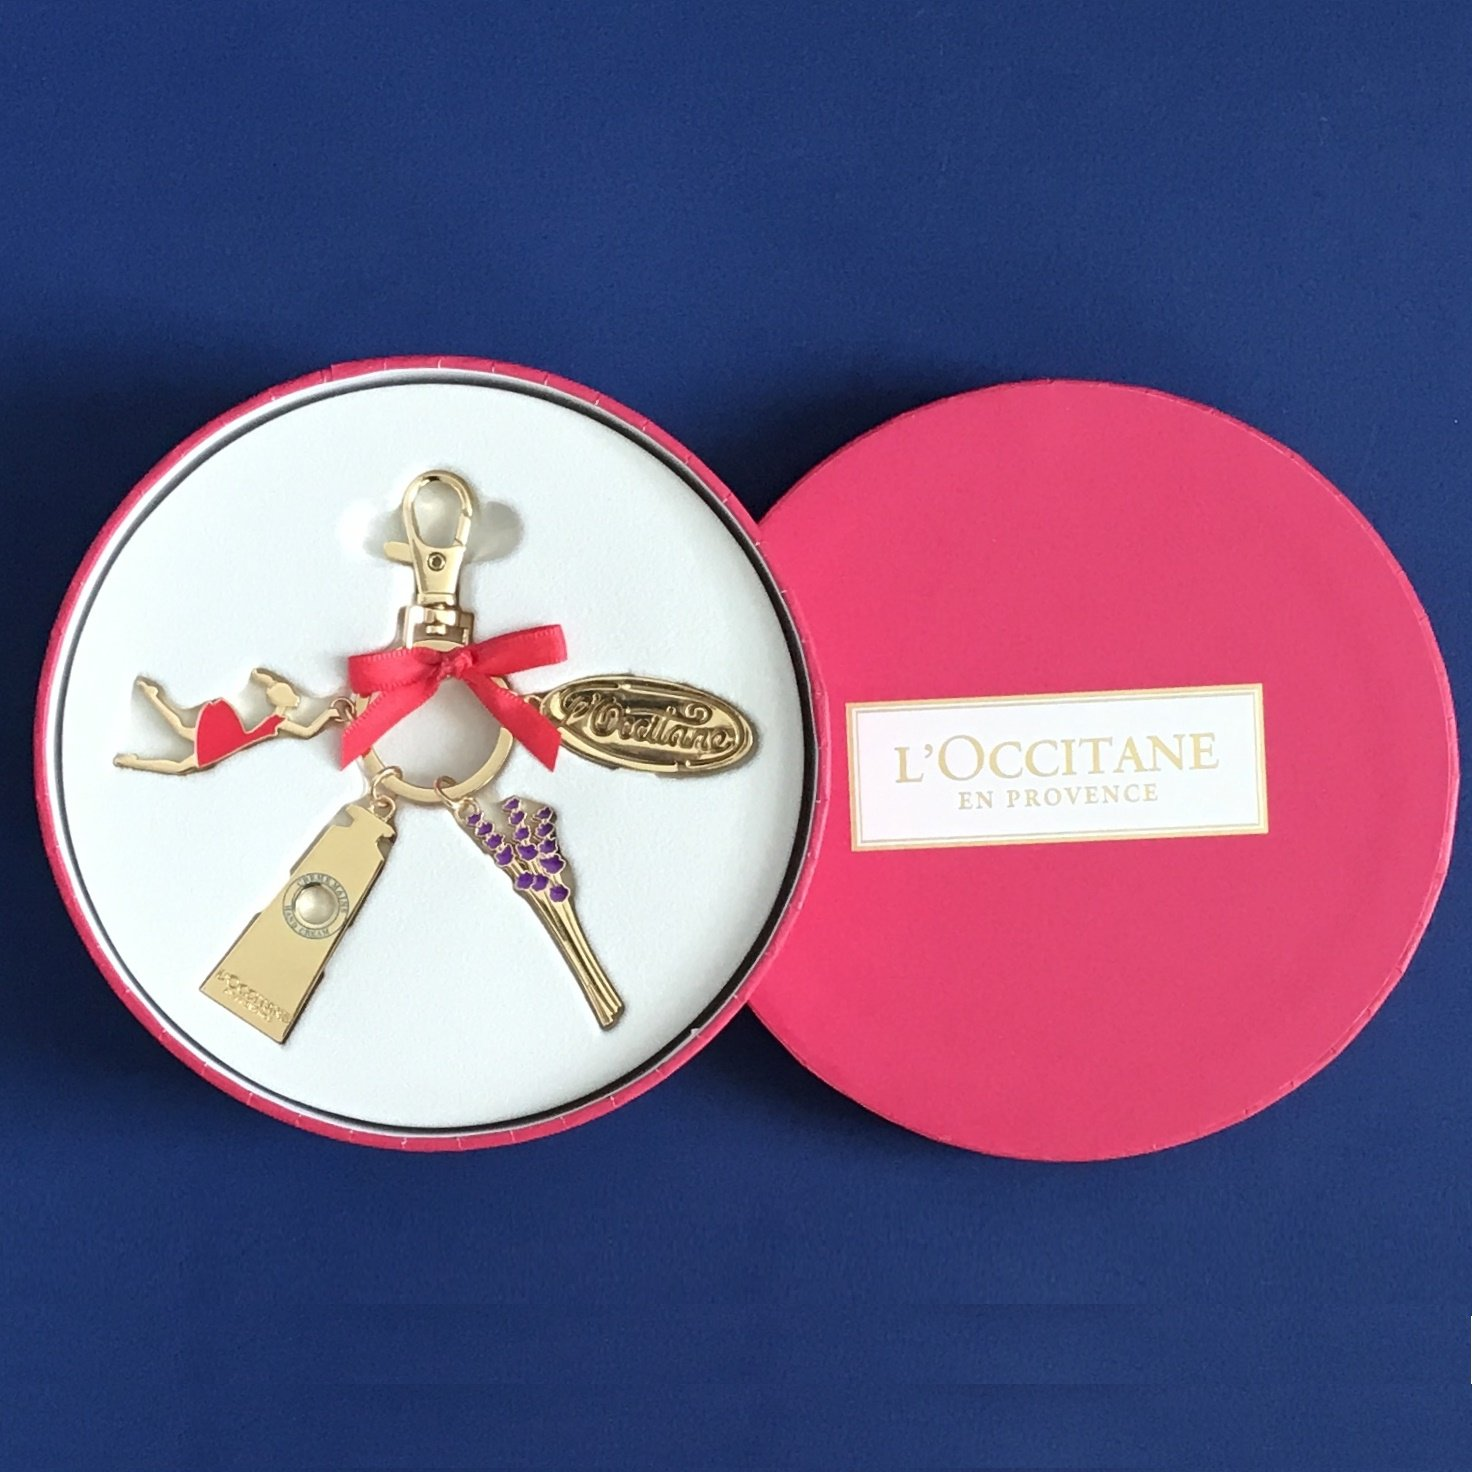 NIB L'Occitane Collector's Edition Charm Key Chain Ring Fob